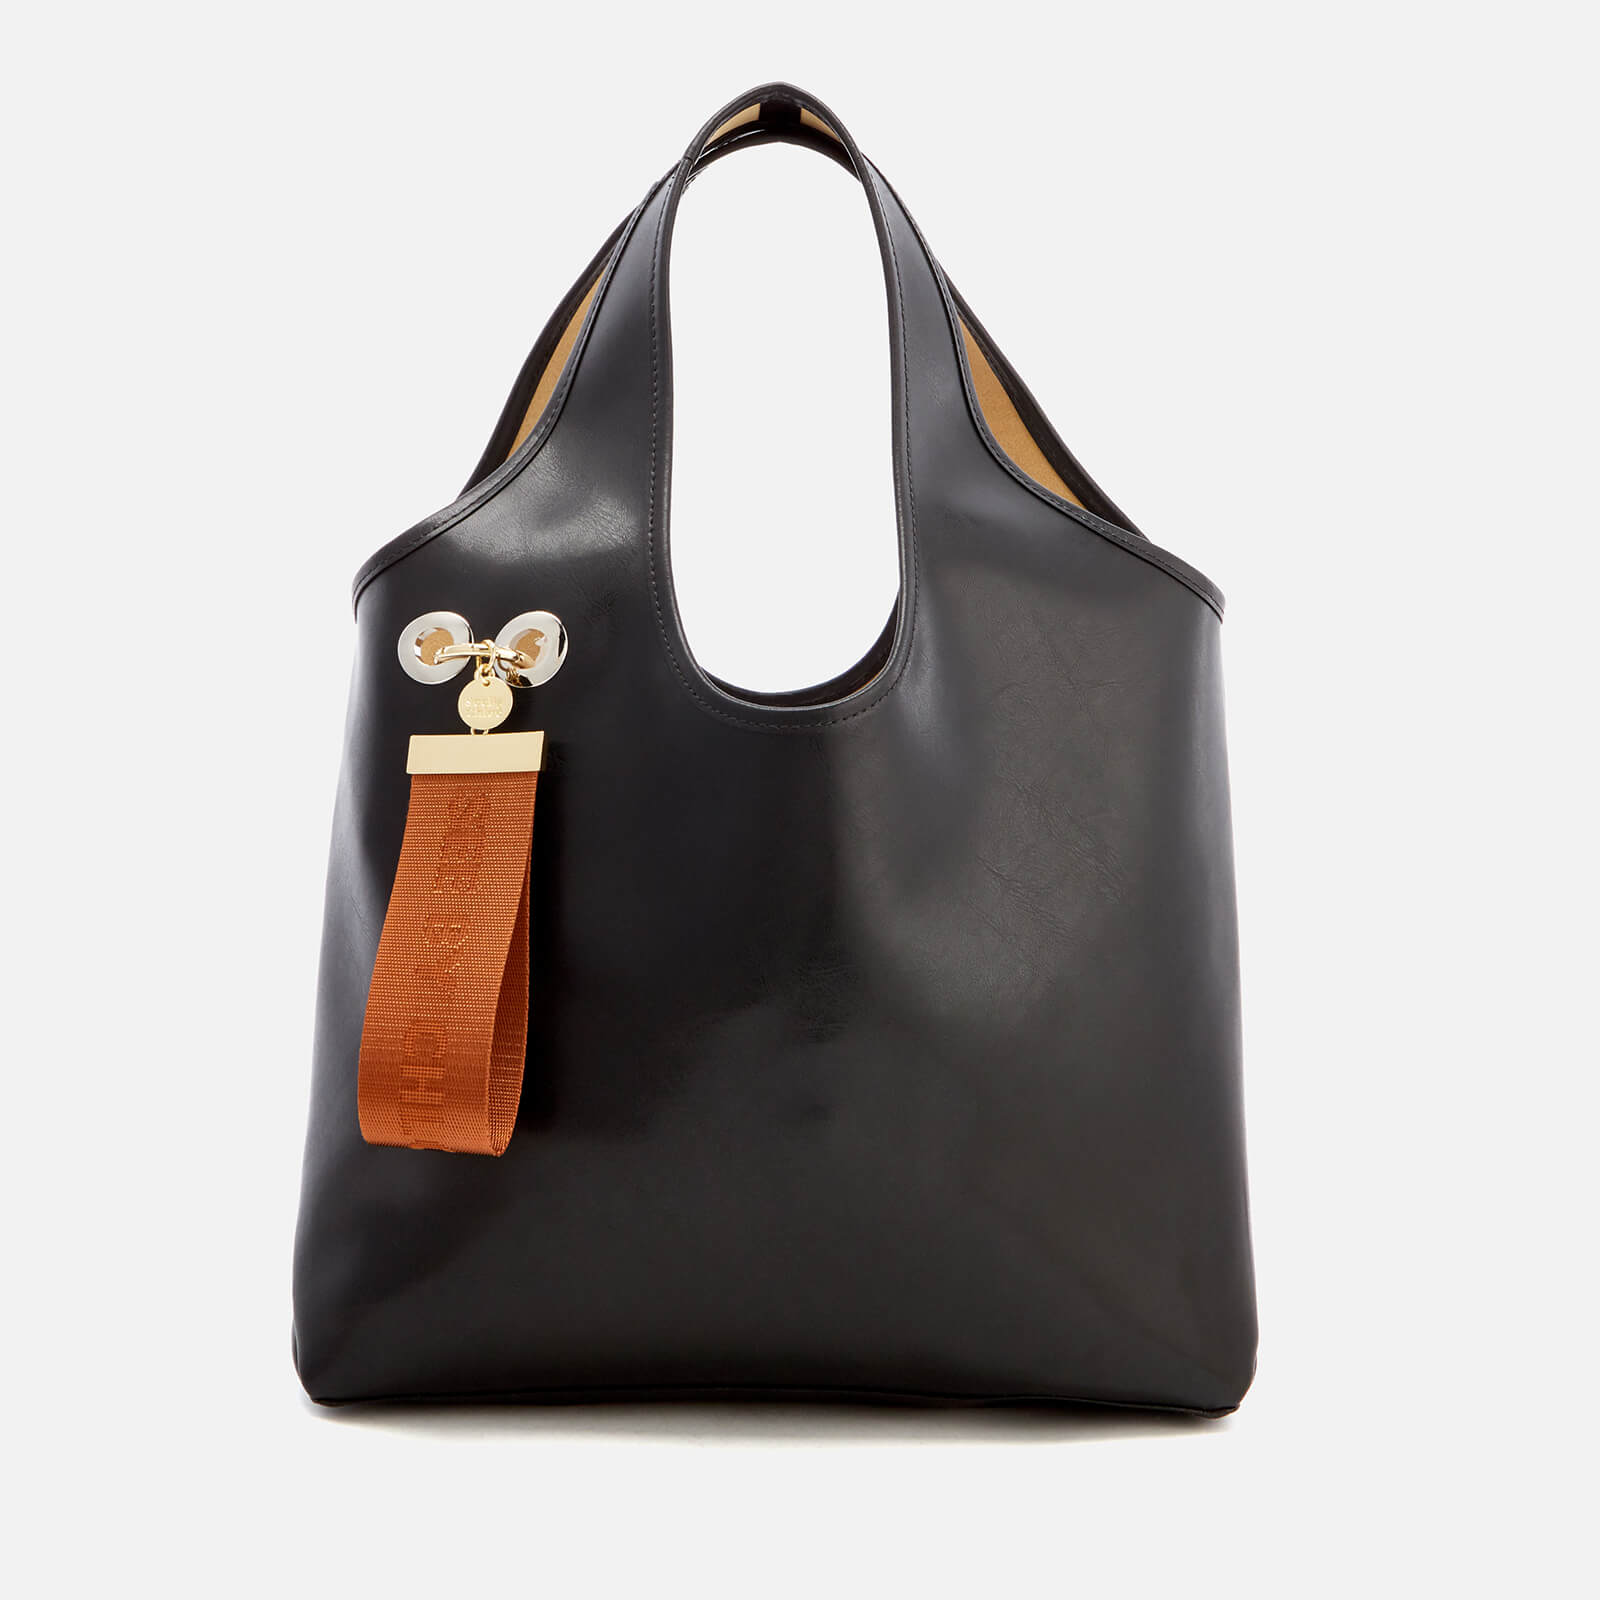 b6fb09ce3e See By Chloé Women's Large Tote Bag - Delicate Black